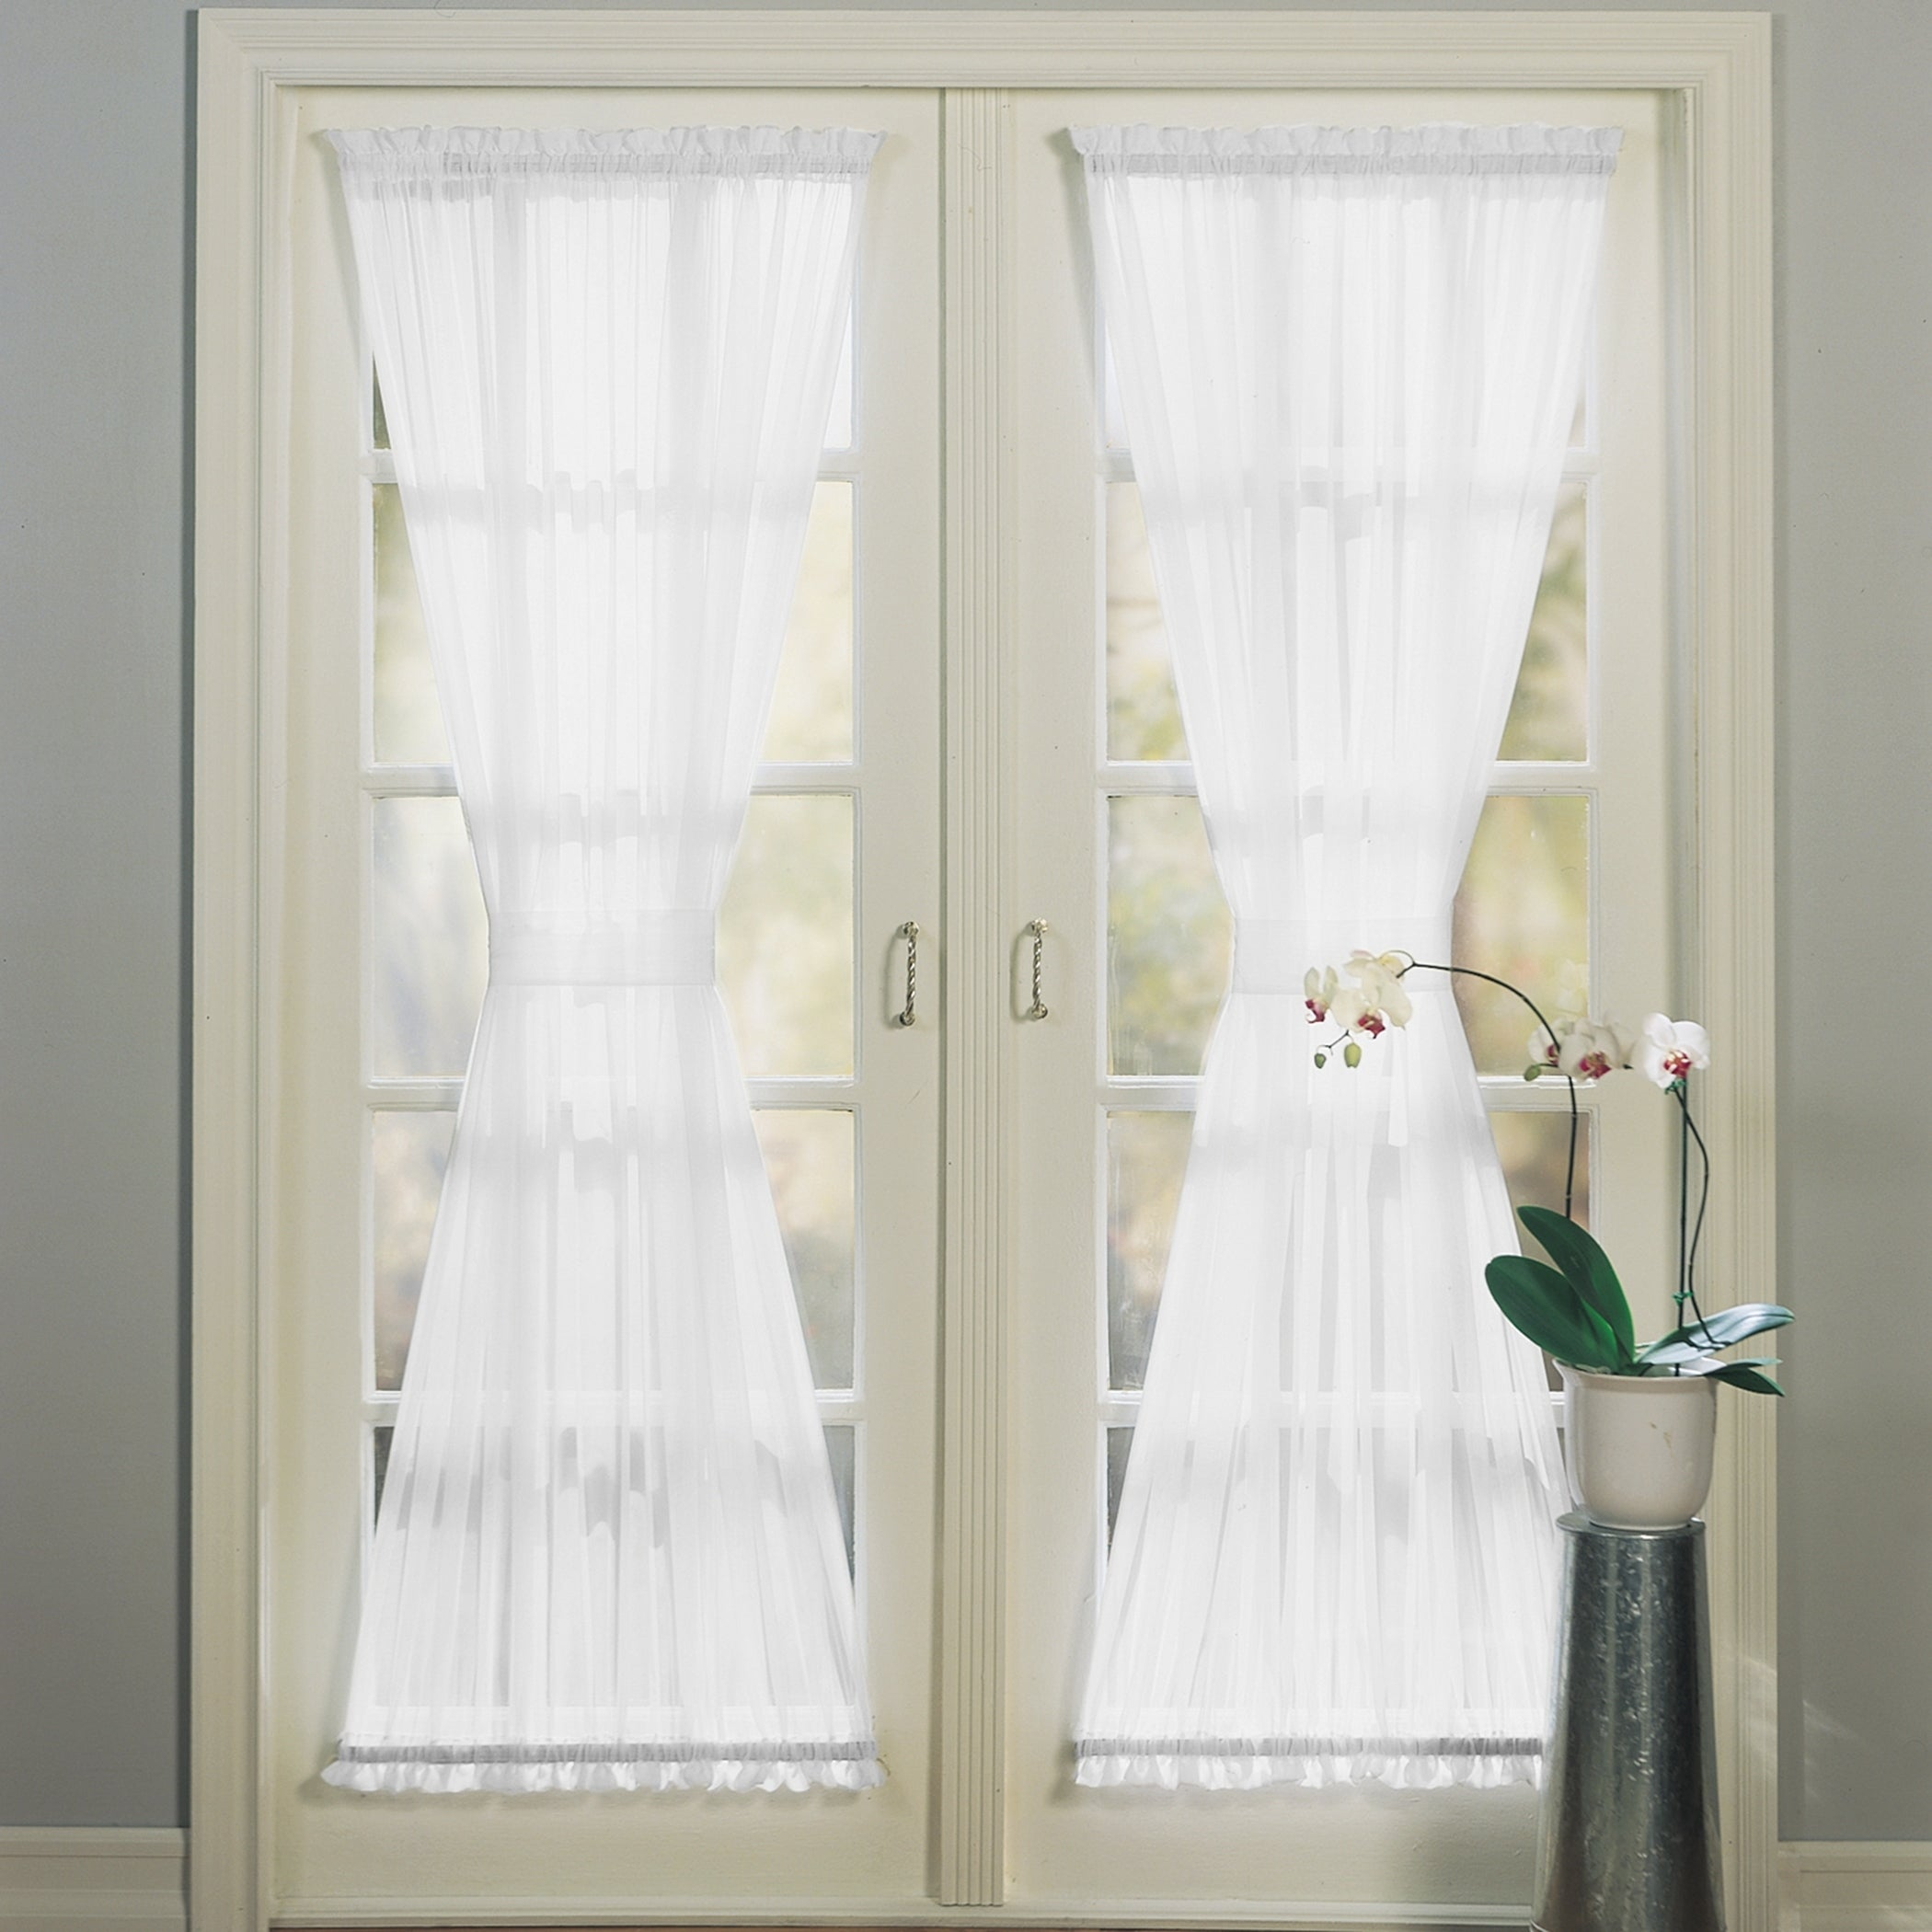 Shop Black Friday Deals On No 918 Emily Sheer Voile Solid Single Patio Door Curtain Panel Overstock 12361203 59 X 40 Eggshell